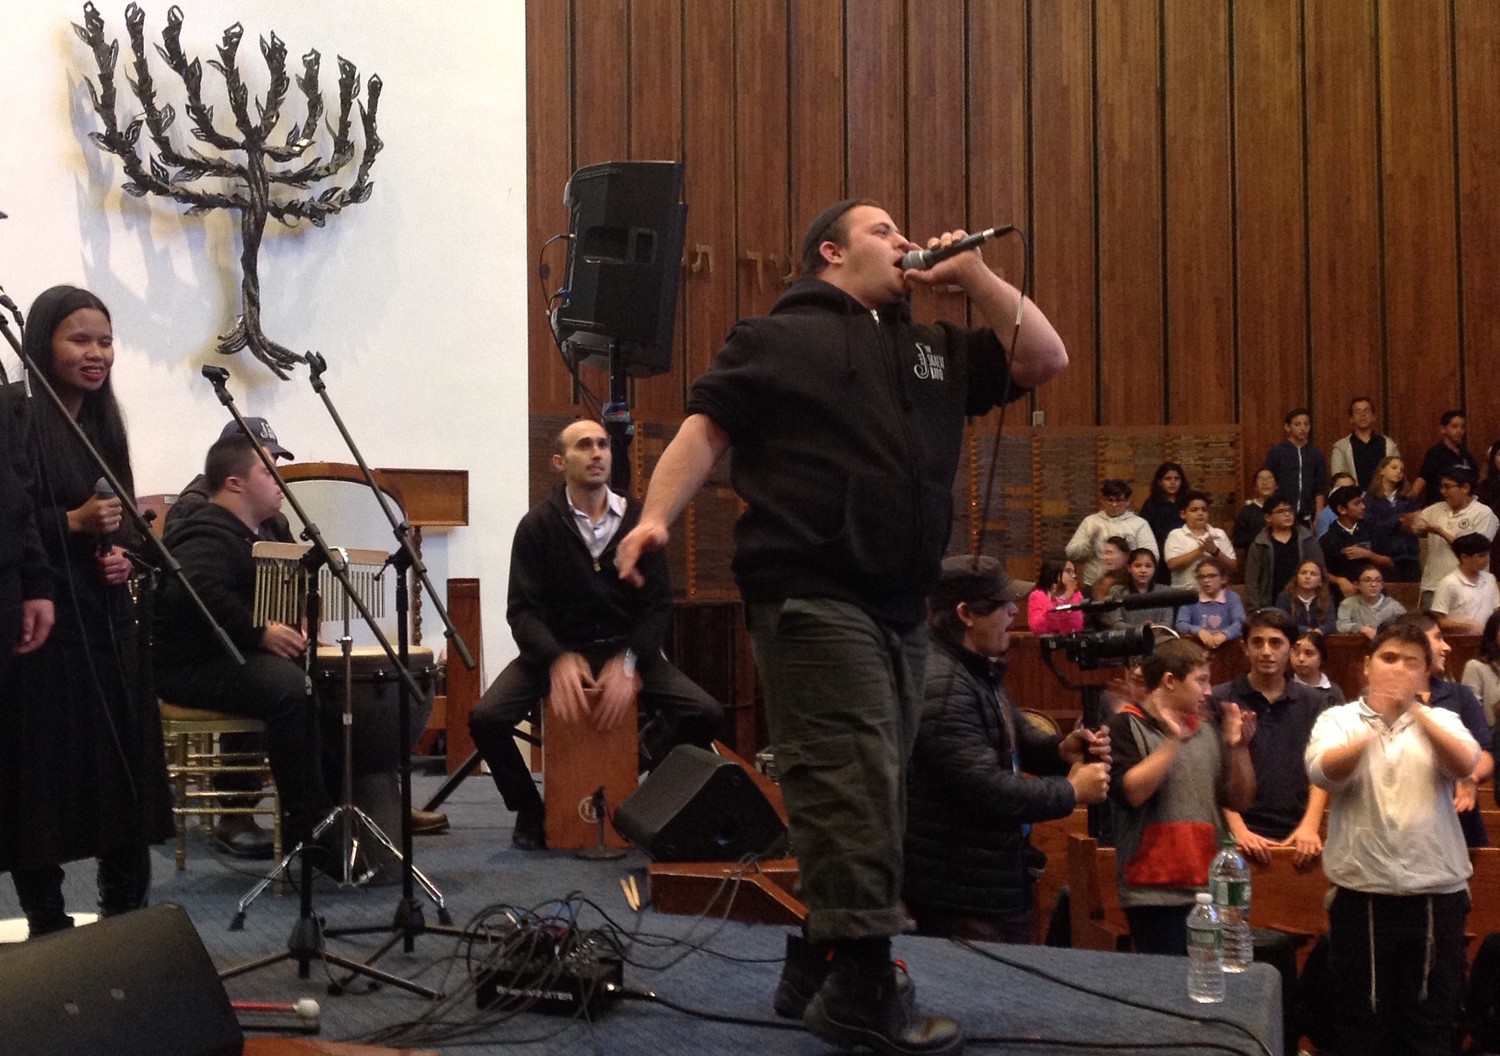 Yair Pomburg raps during a performance of the Shalva Band at the North Shore Hebrew Academy in Great Neck.